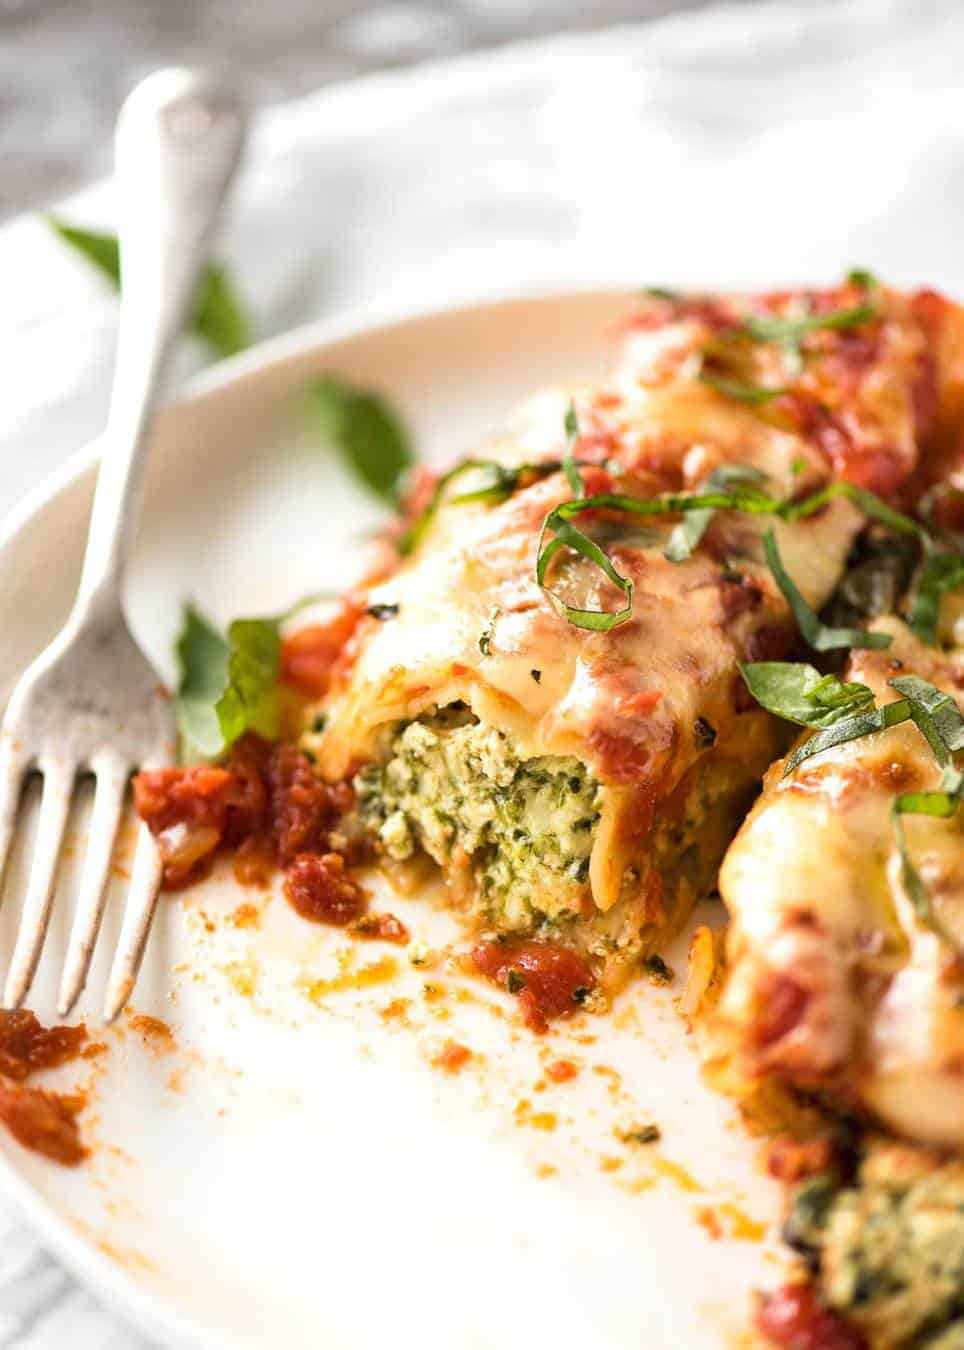 Imagine coming home to this Spinach Ricotta Cannelloni.... www.recipetineats.com